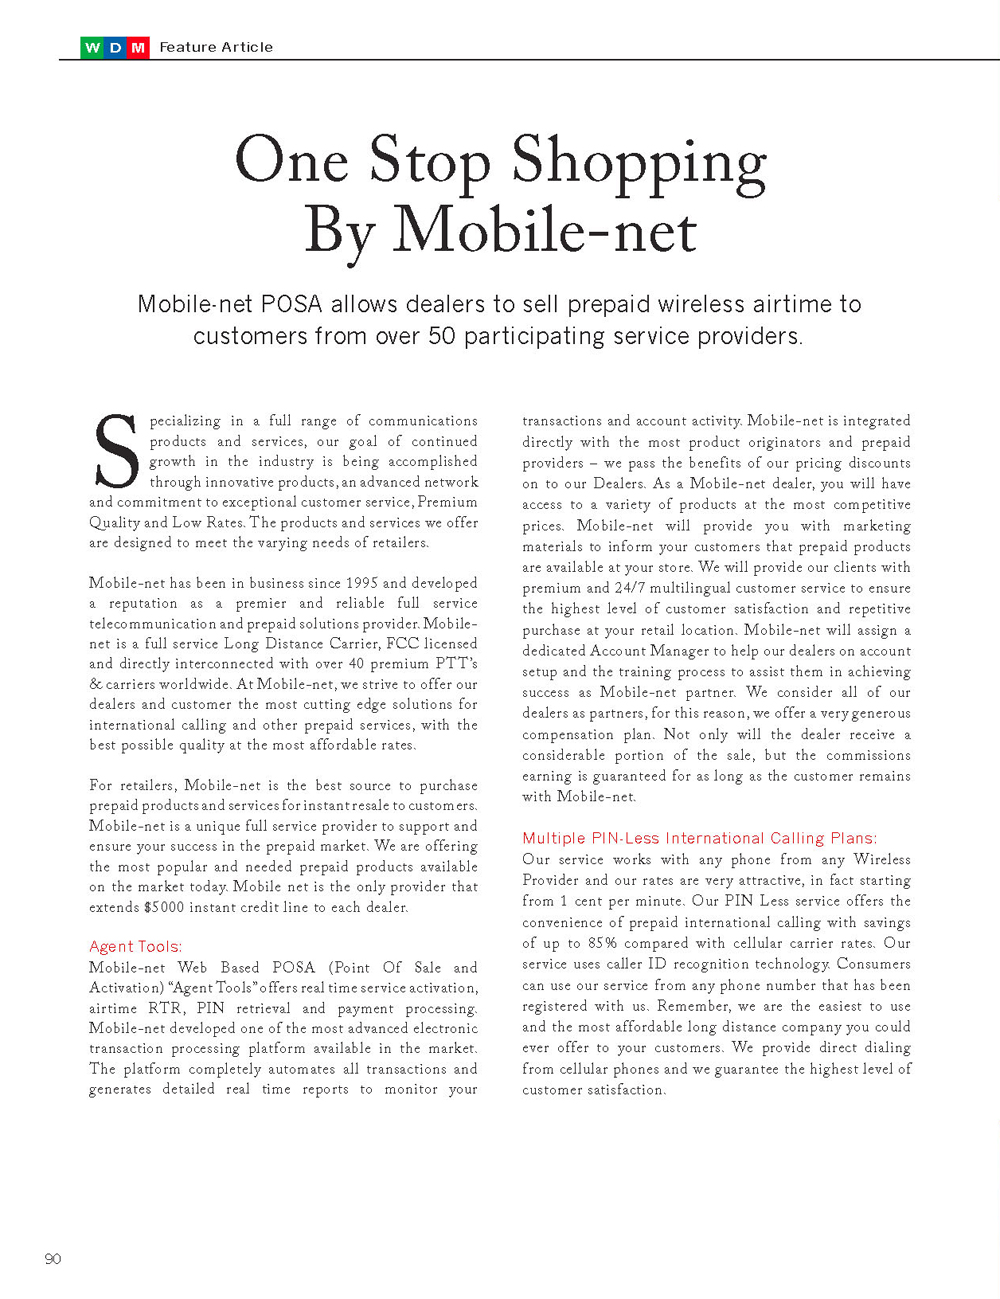 One Stop Shopping By Mobile-net | Featured Distributors